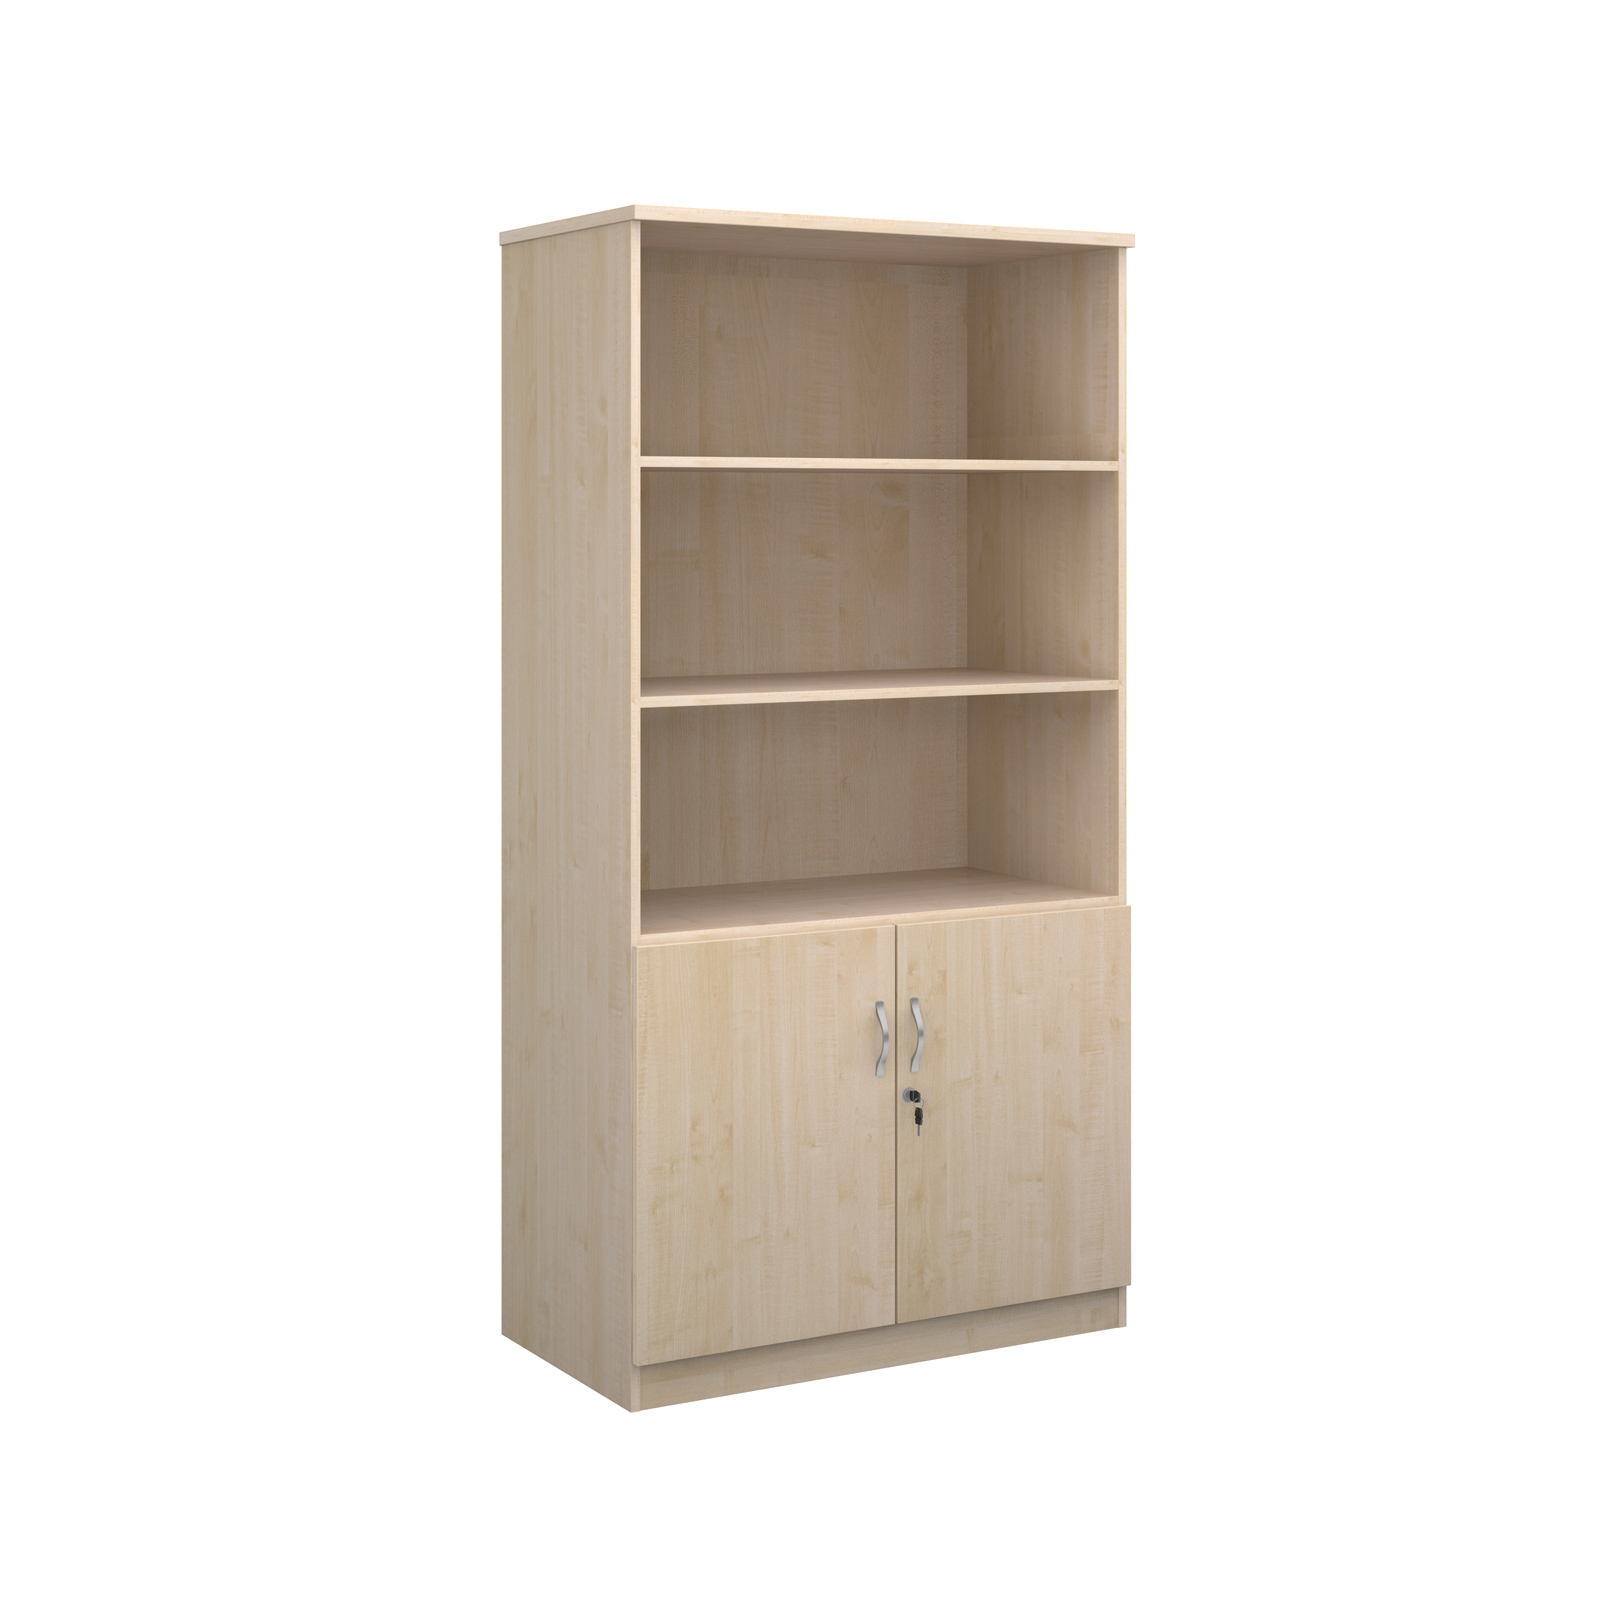 2000mm high deluxe combination bookcase with wood doors and open tops